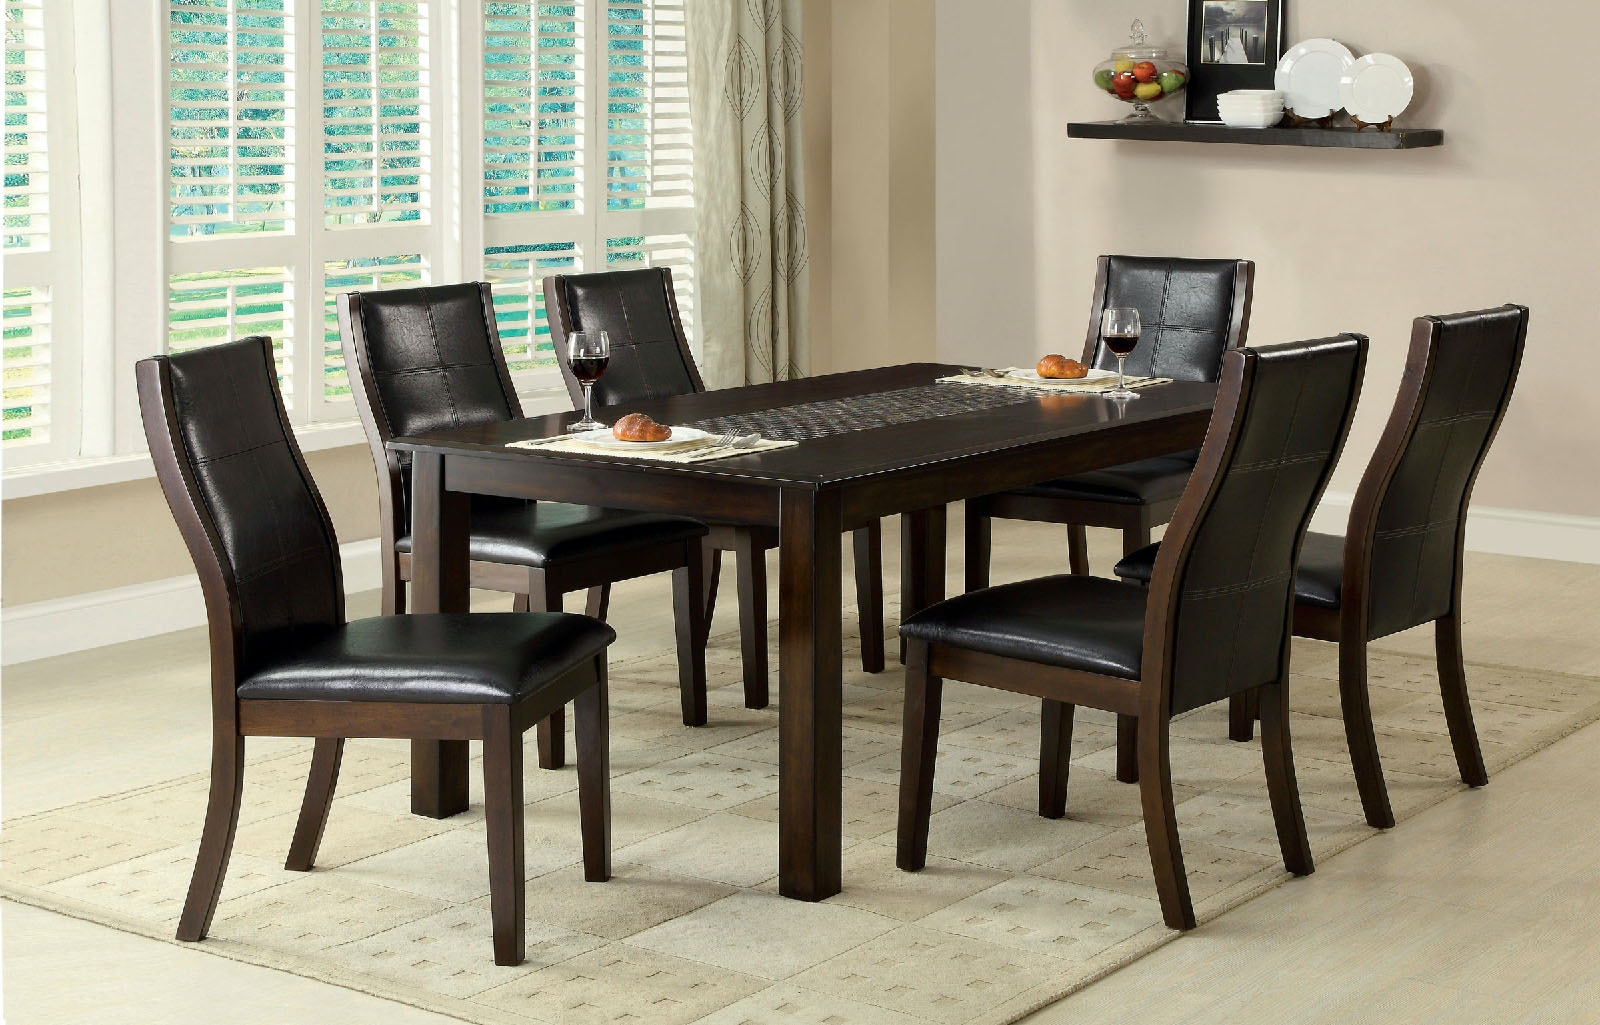 dining table with insert counter height furniture of america mosaicinsert dining table cm3669t accessories